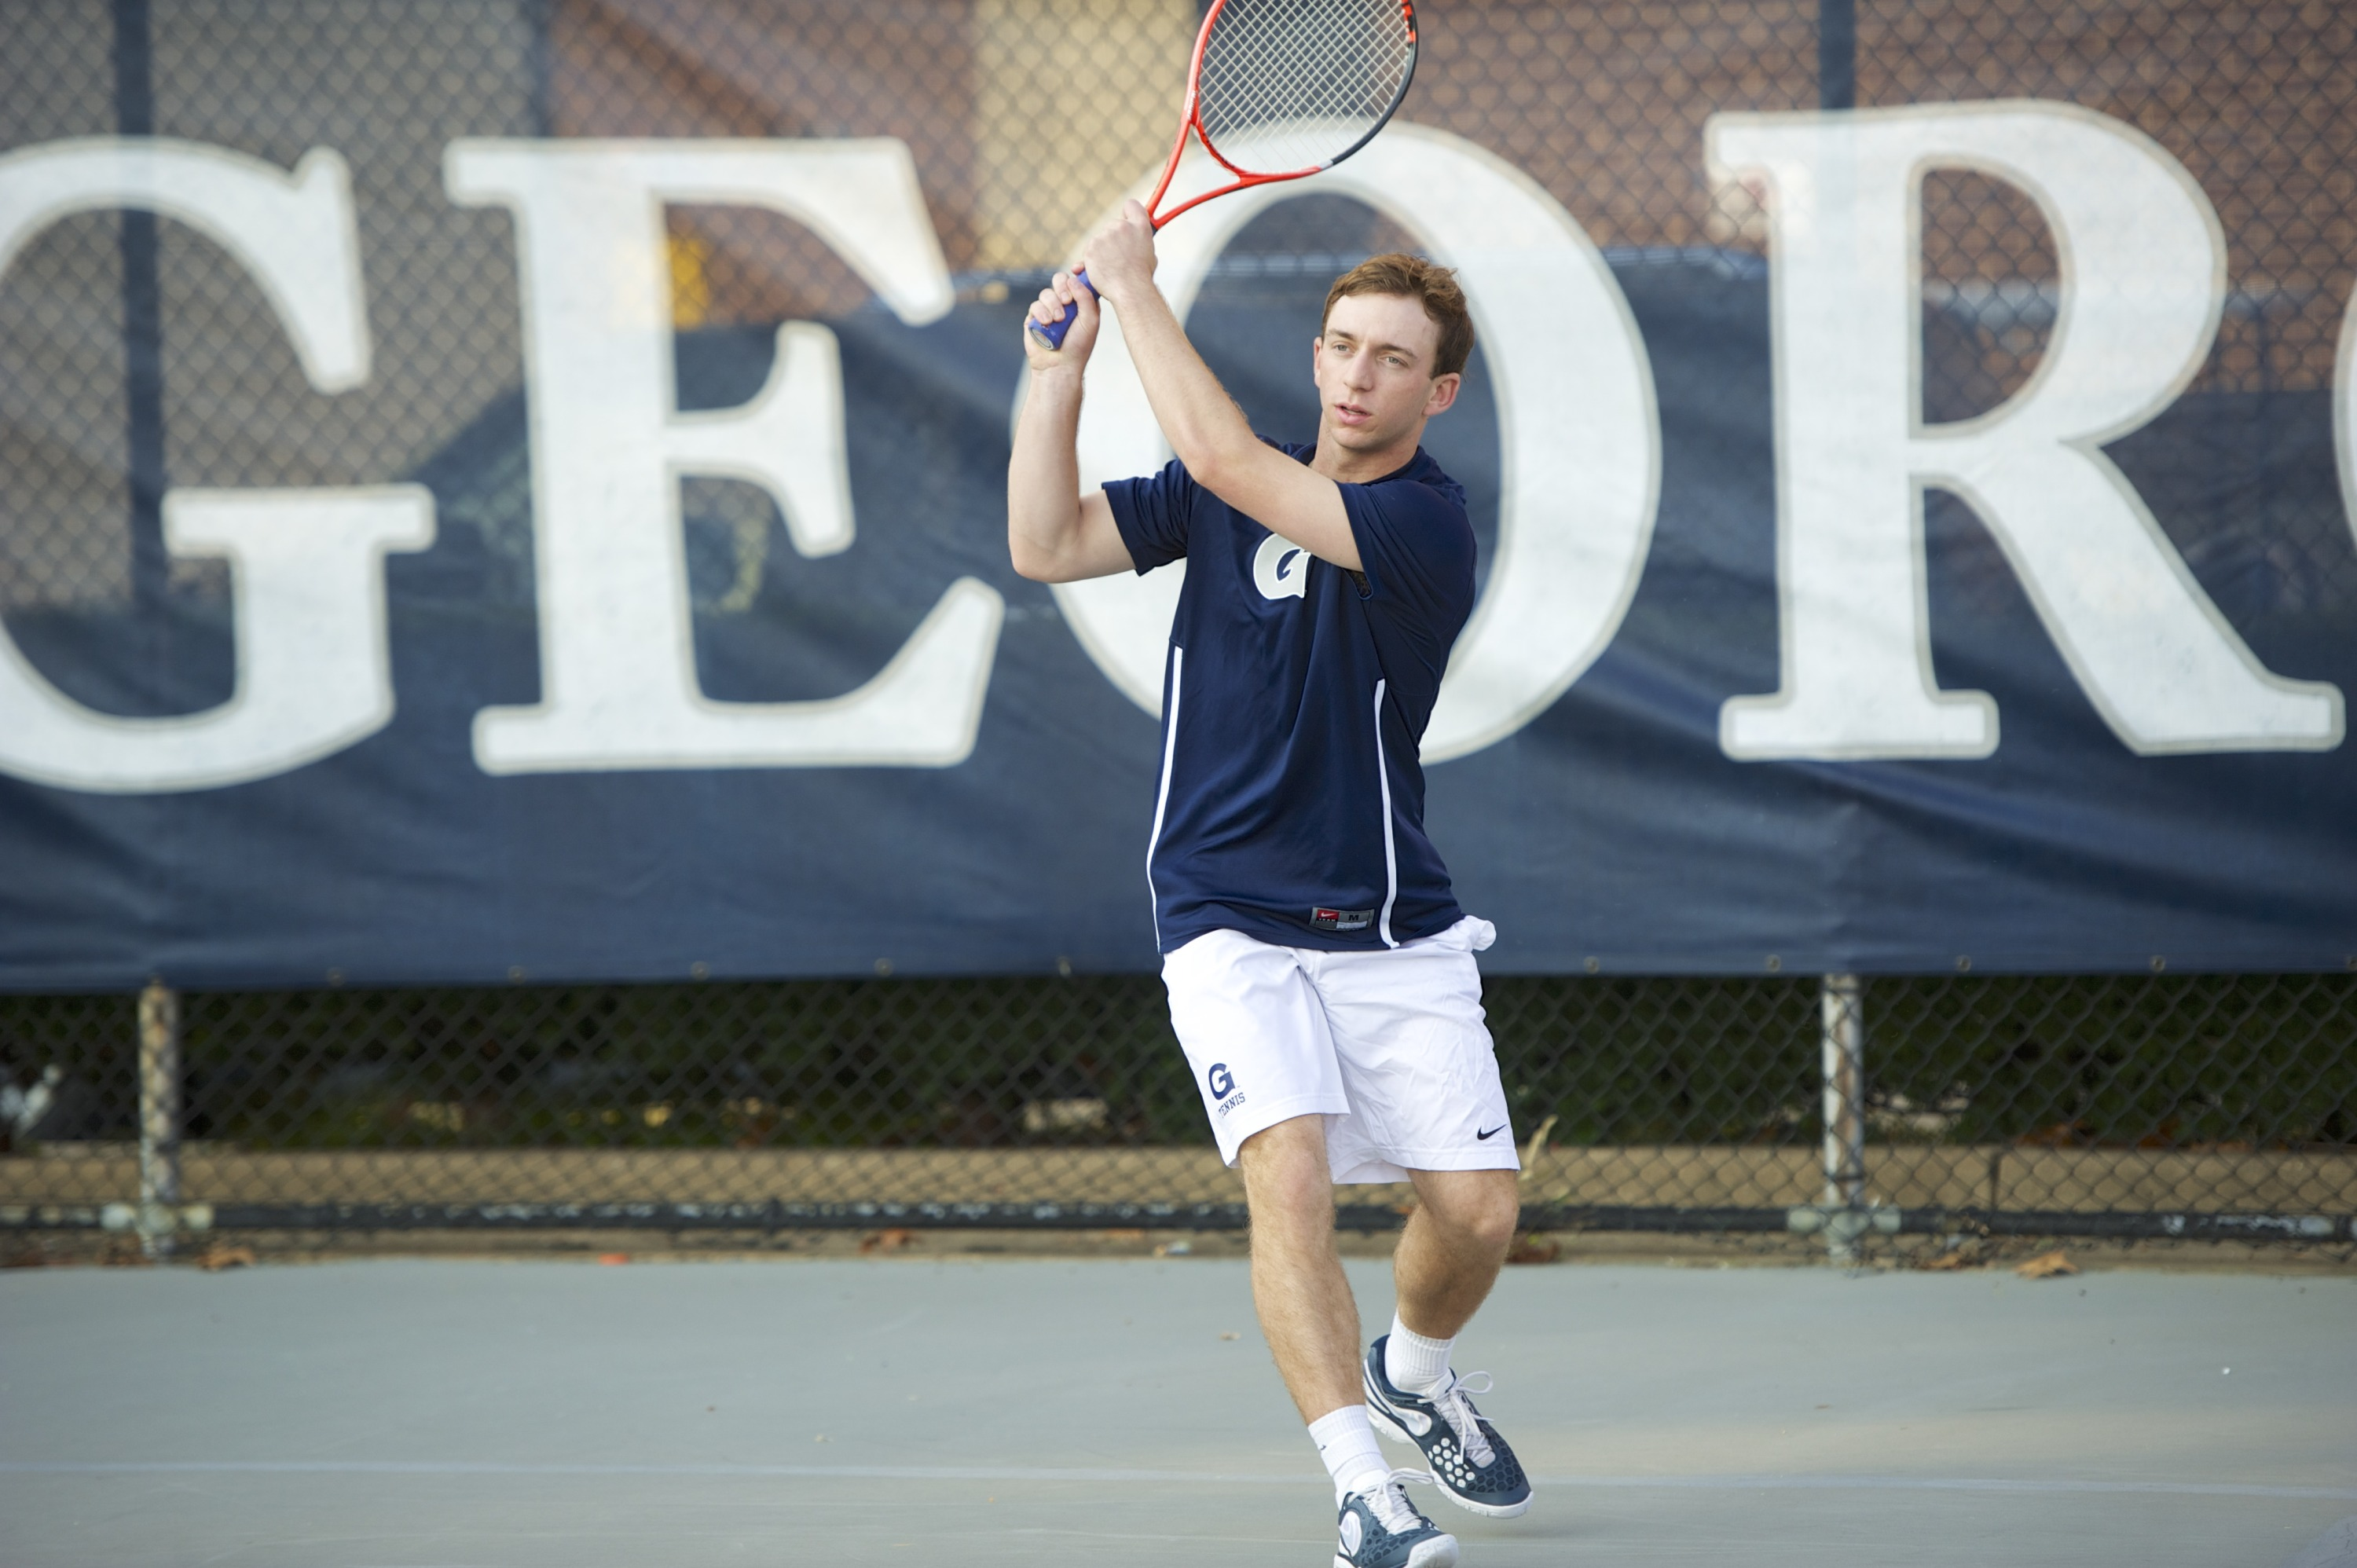 <b> Daniel Khanin picked up his fourth singles win from the No. 1 position in 2014 for the Hoyas.</b>